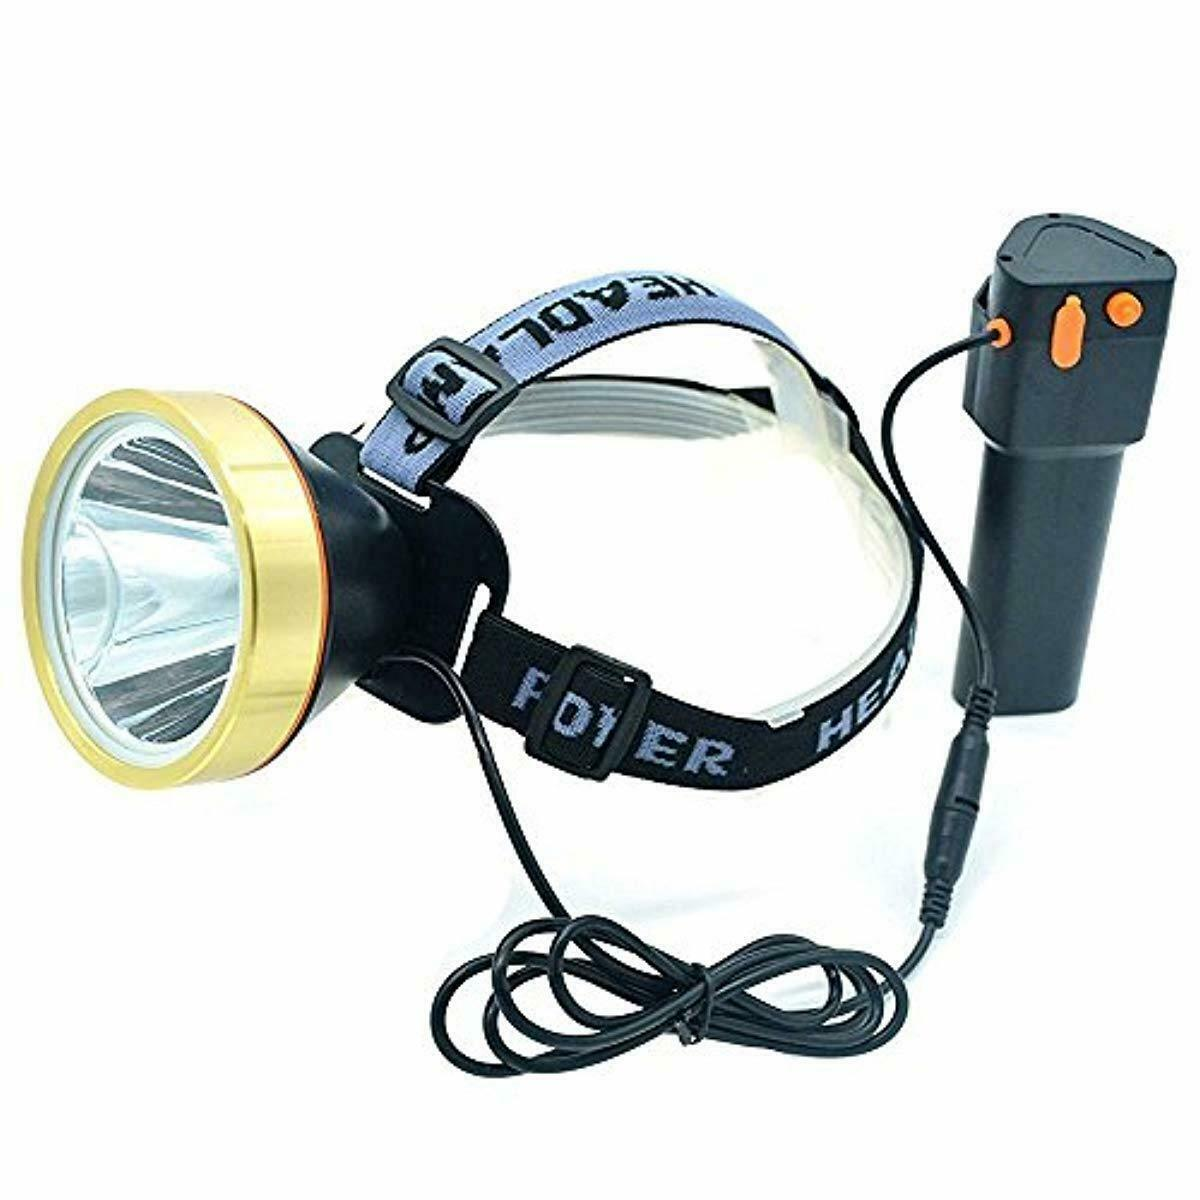 Head Mounted Flashlight Head Lamps for Adults Kids Children